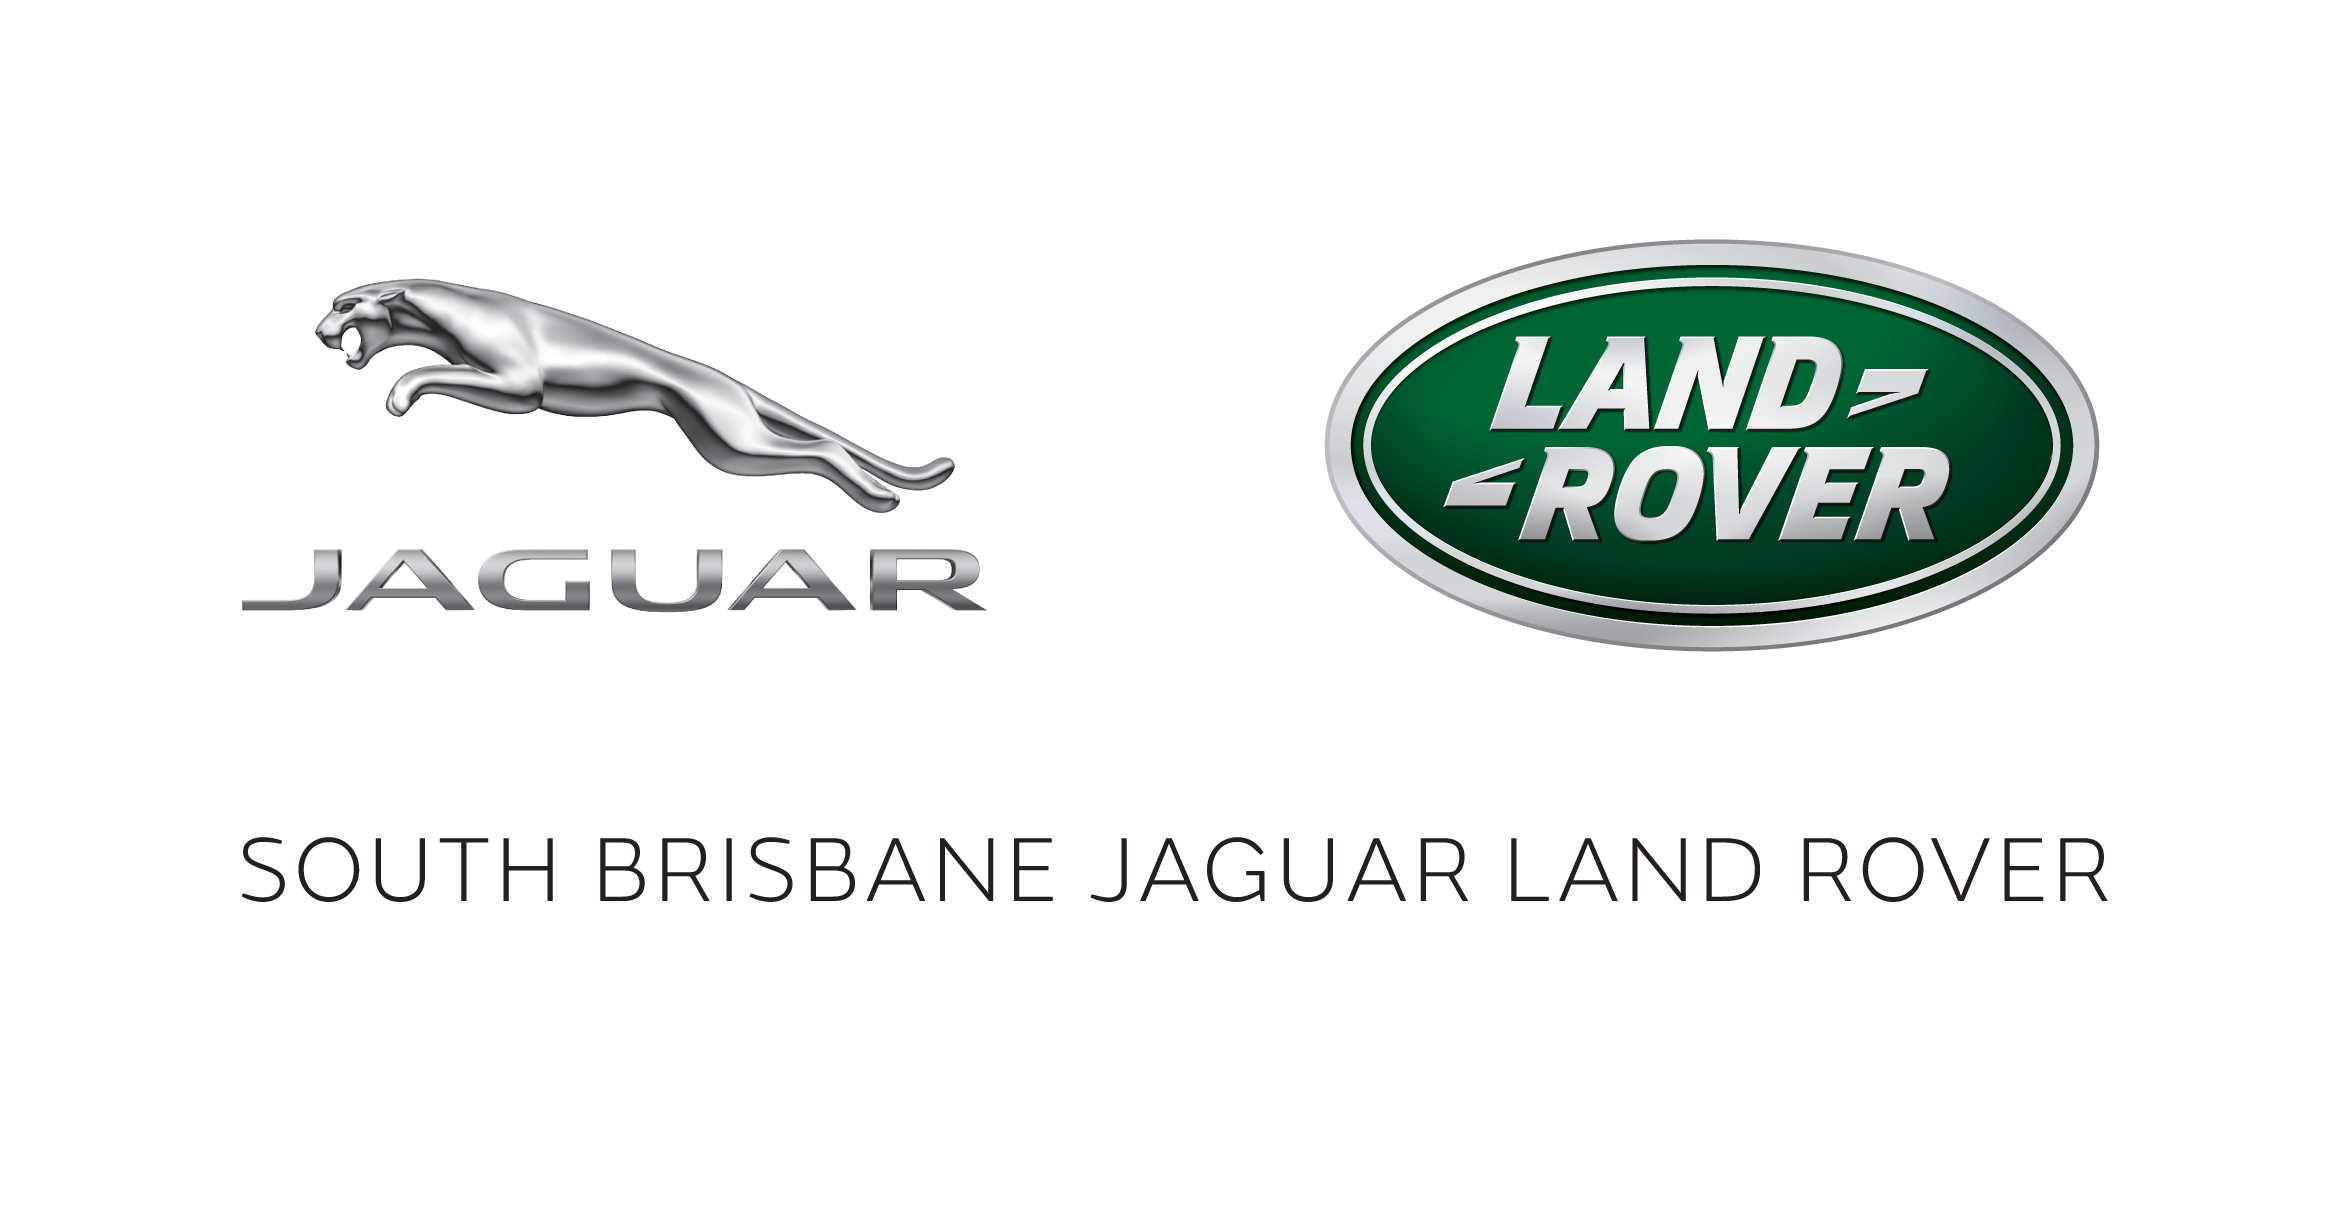 South Brisbane Jaguar Land Rover Logo